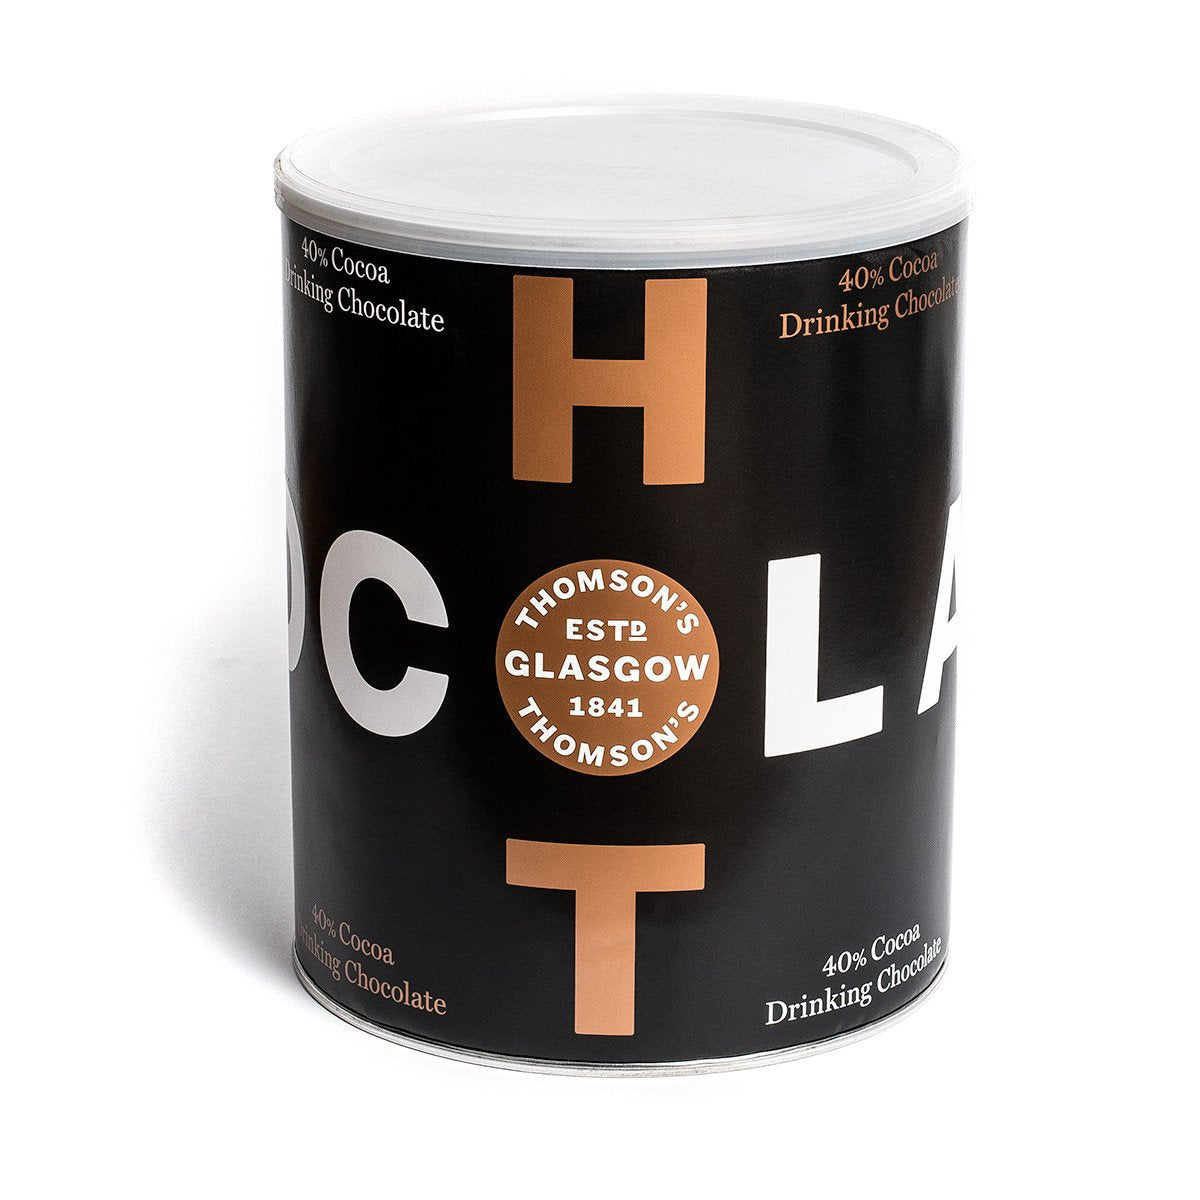 Thomson's 40% Cocoa Drinking Hot Chocolate 2KG